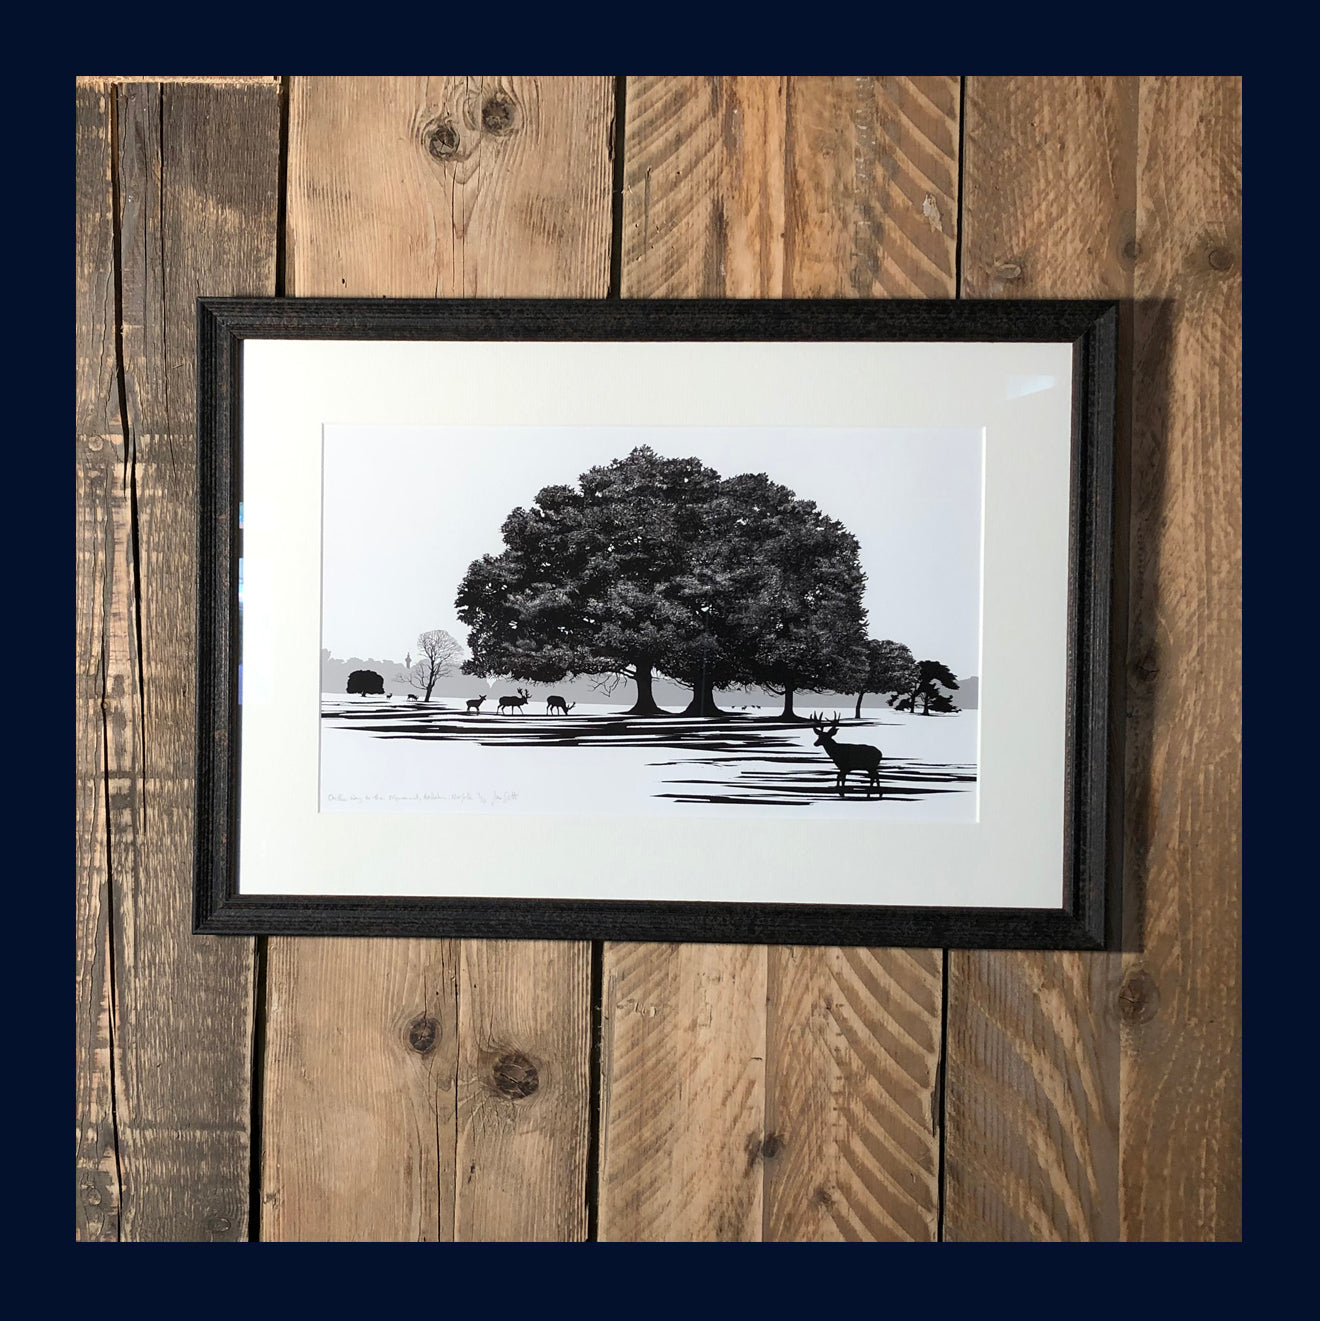 FRAMED On the Way to the Monument, Holkham, Norfolk. Limited Edition Fine Art Print